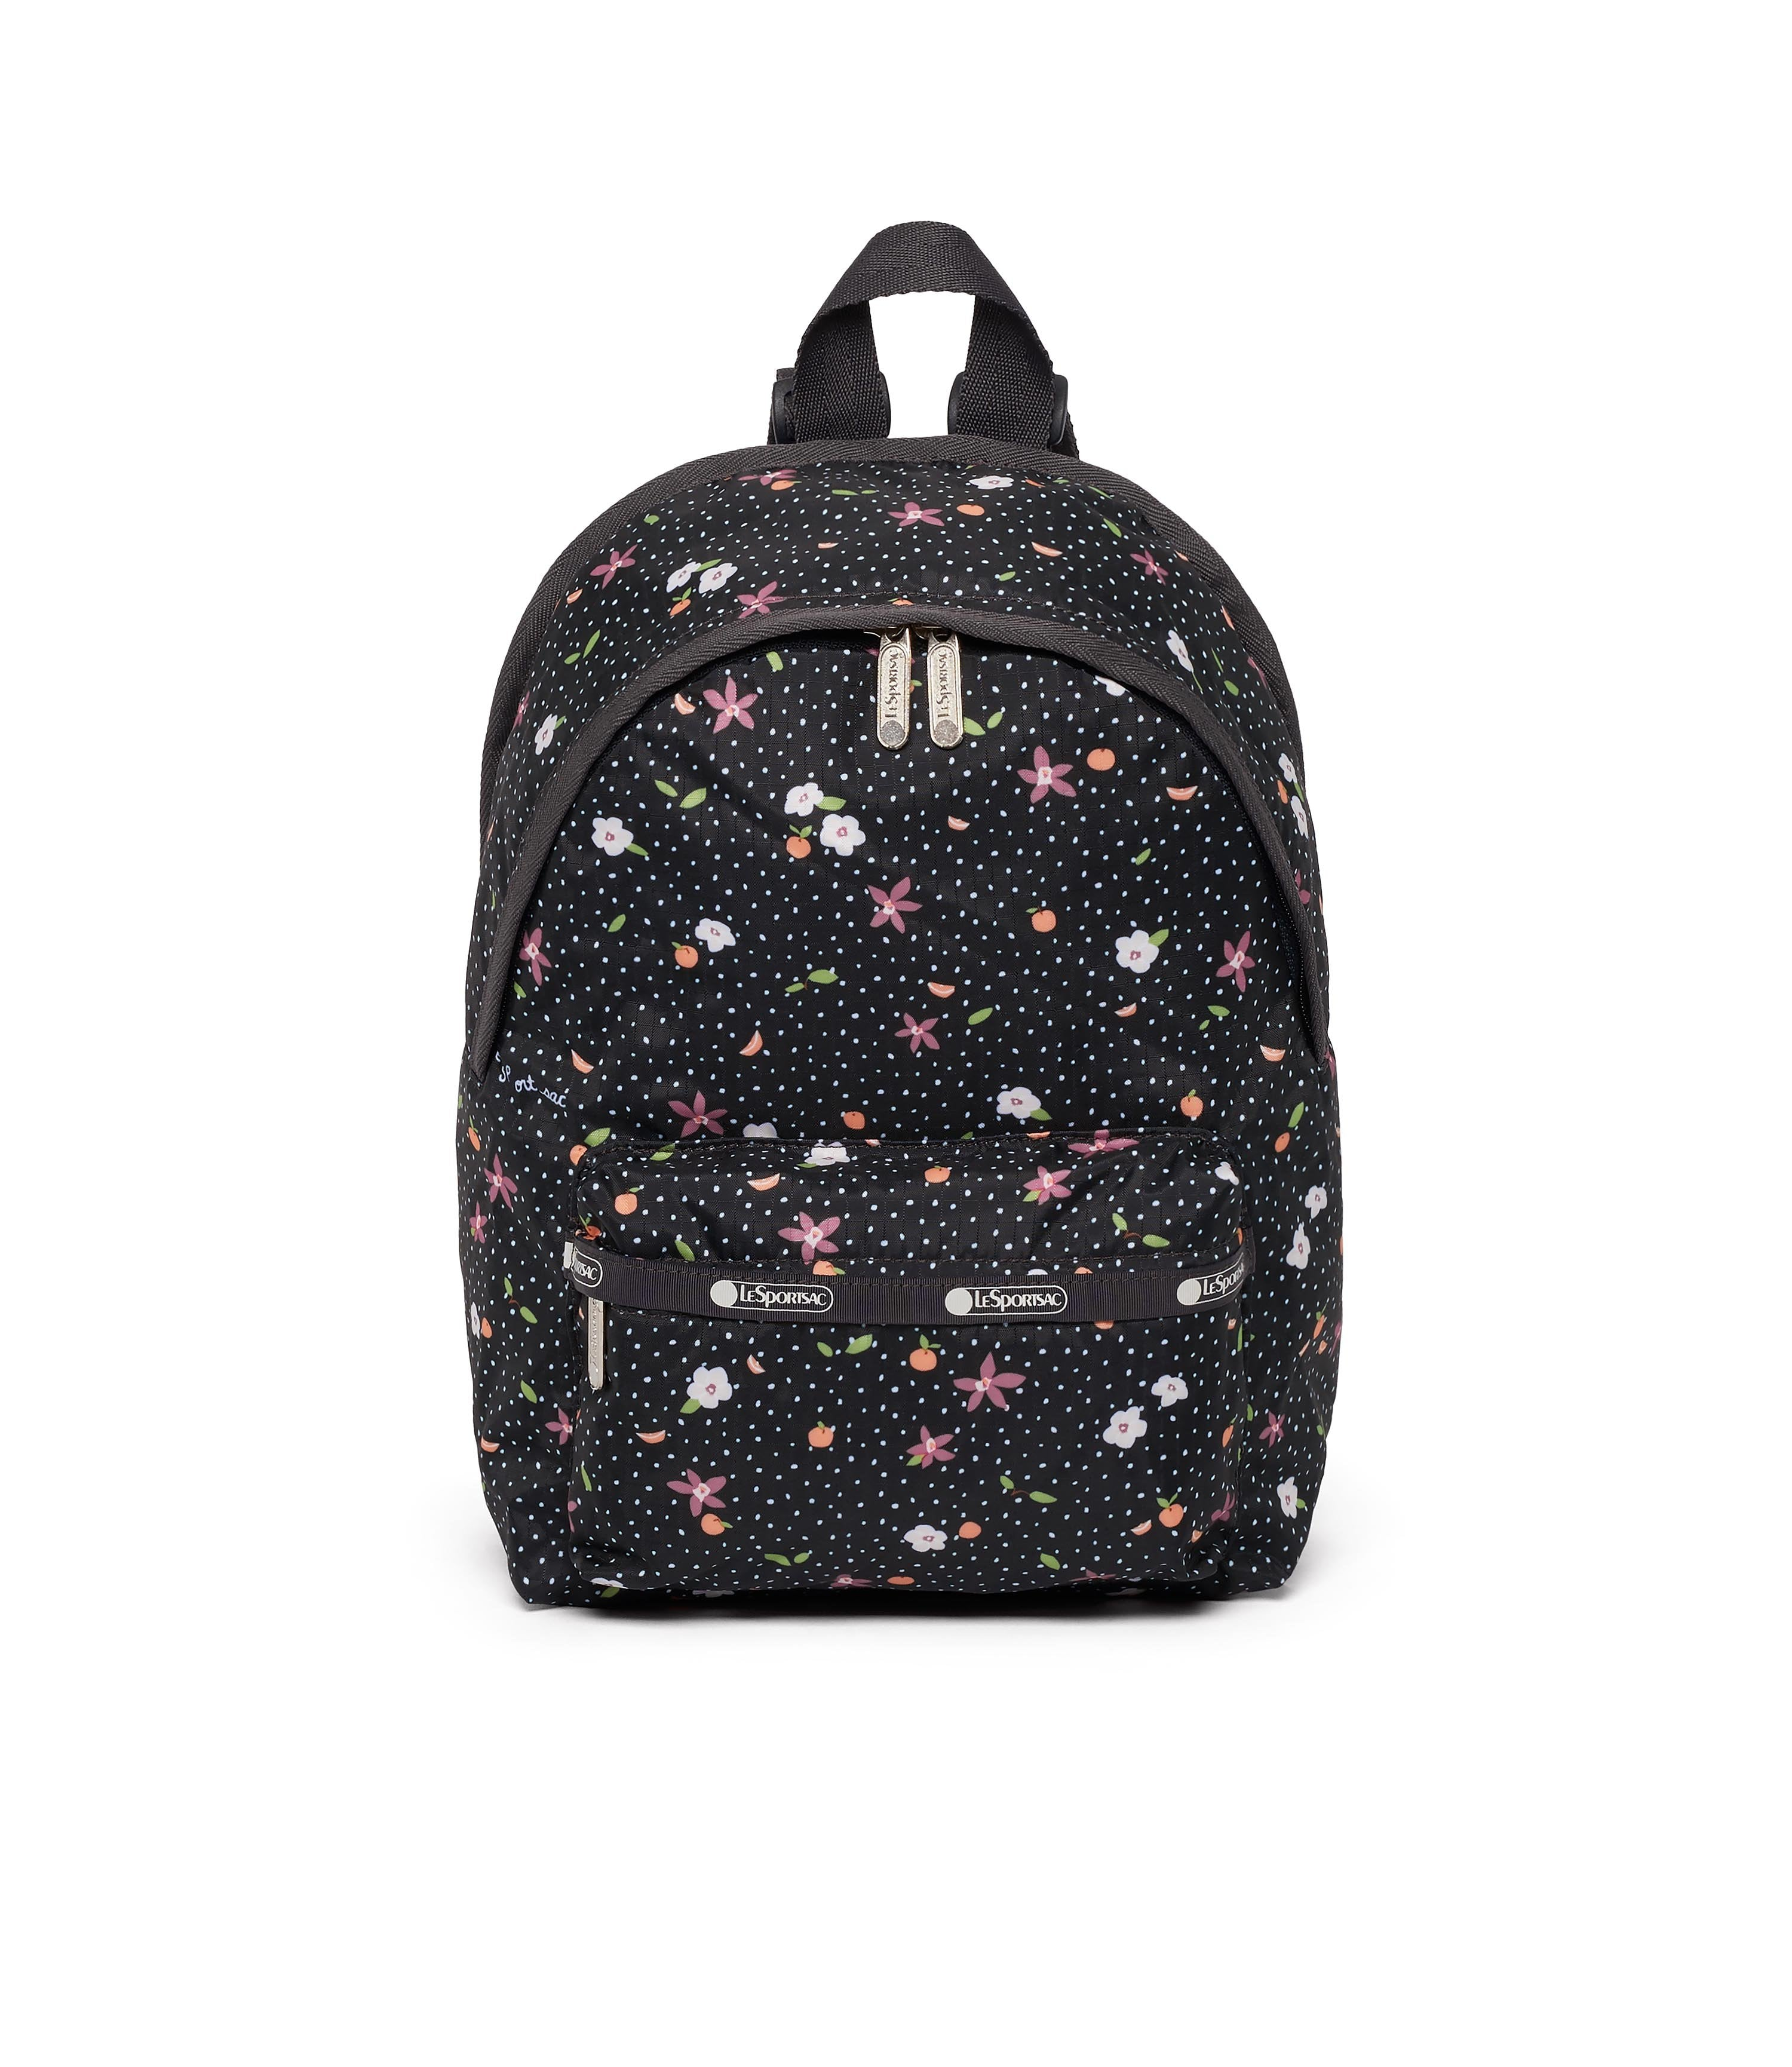 LeSportsac - Small Hollis Backpack - Backpacks - Fruity Petals print